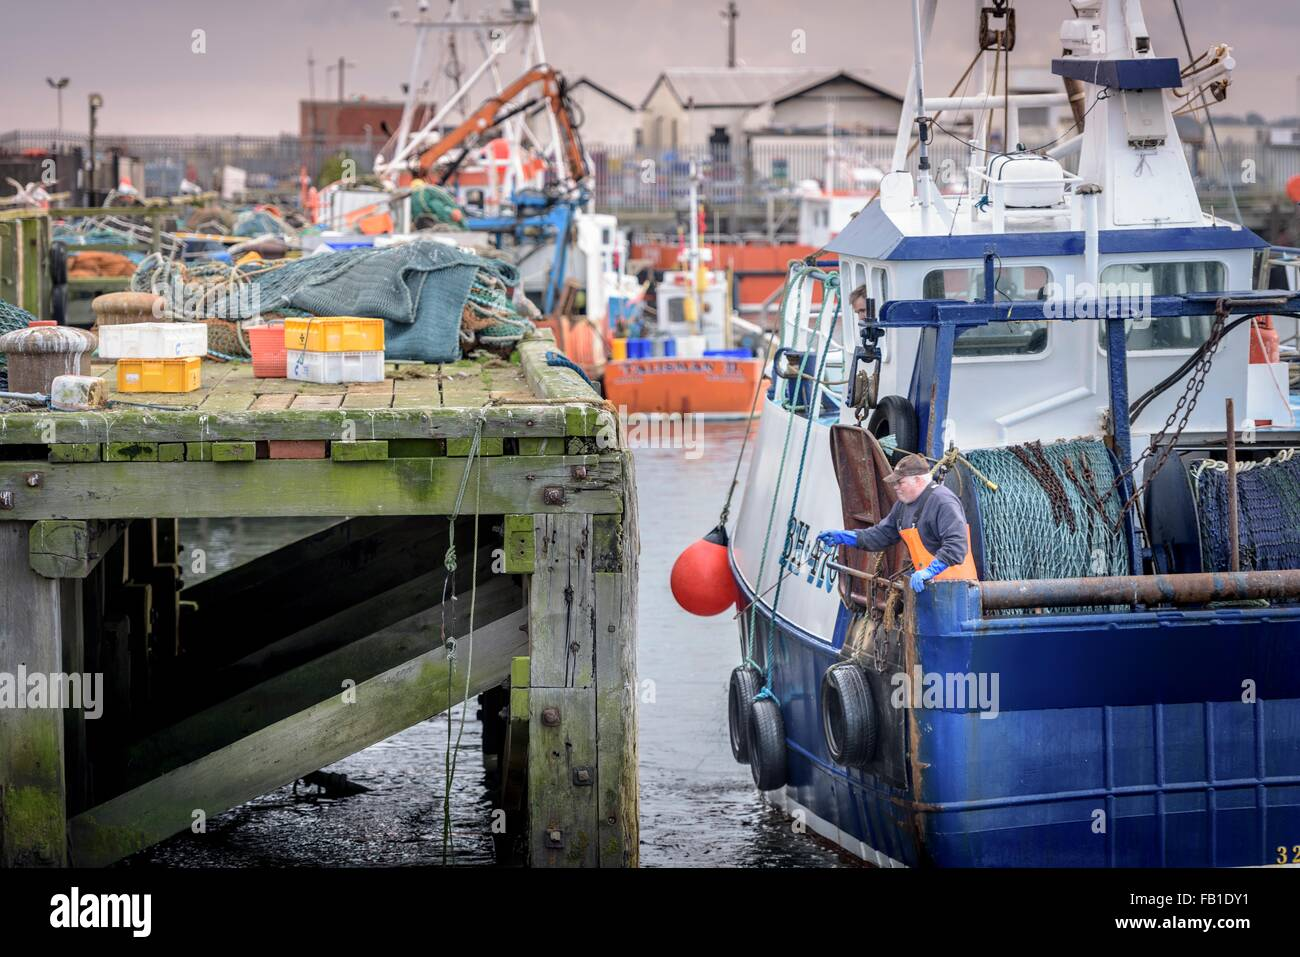 Fishermen tying up trawler in harbour at dusk - Stock Image